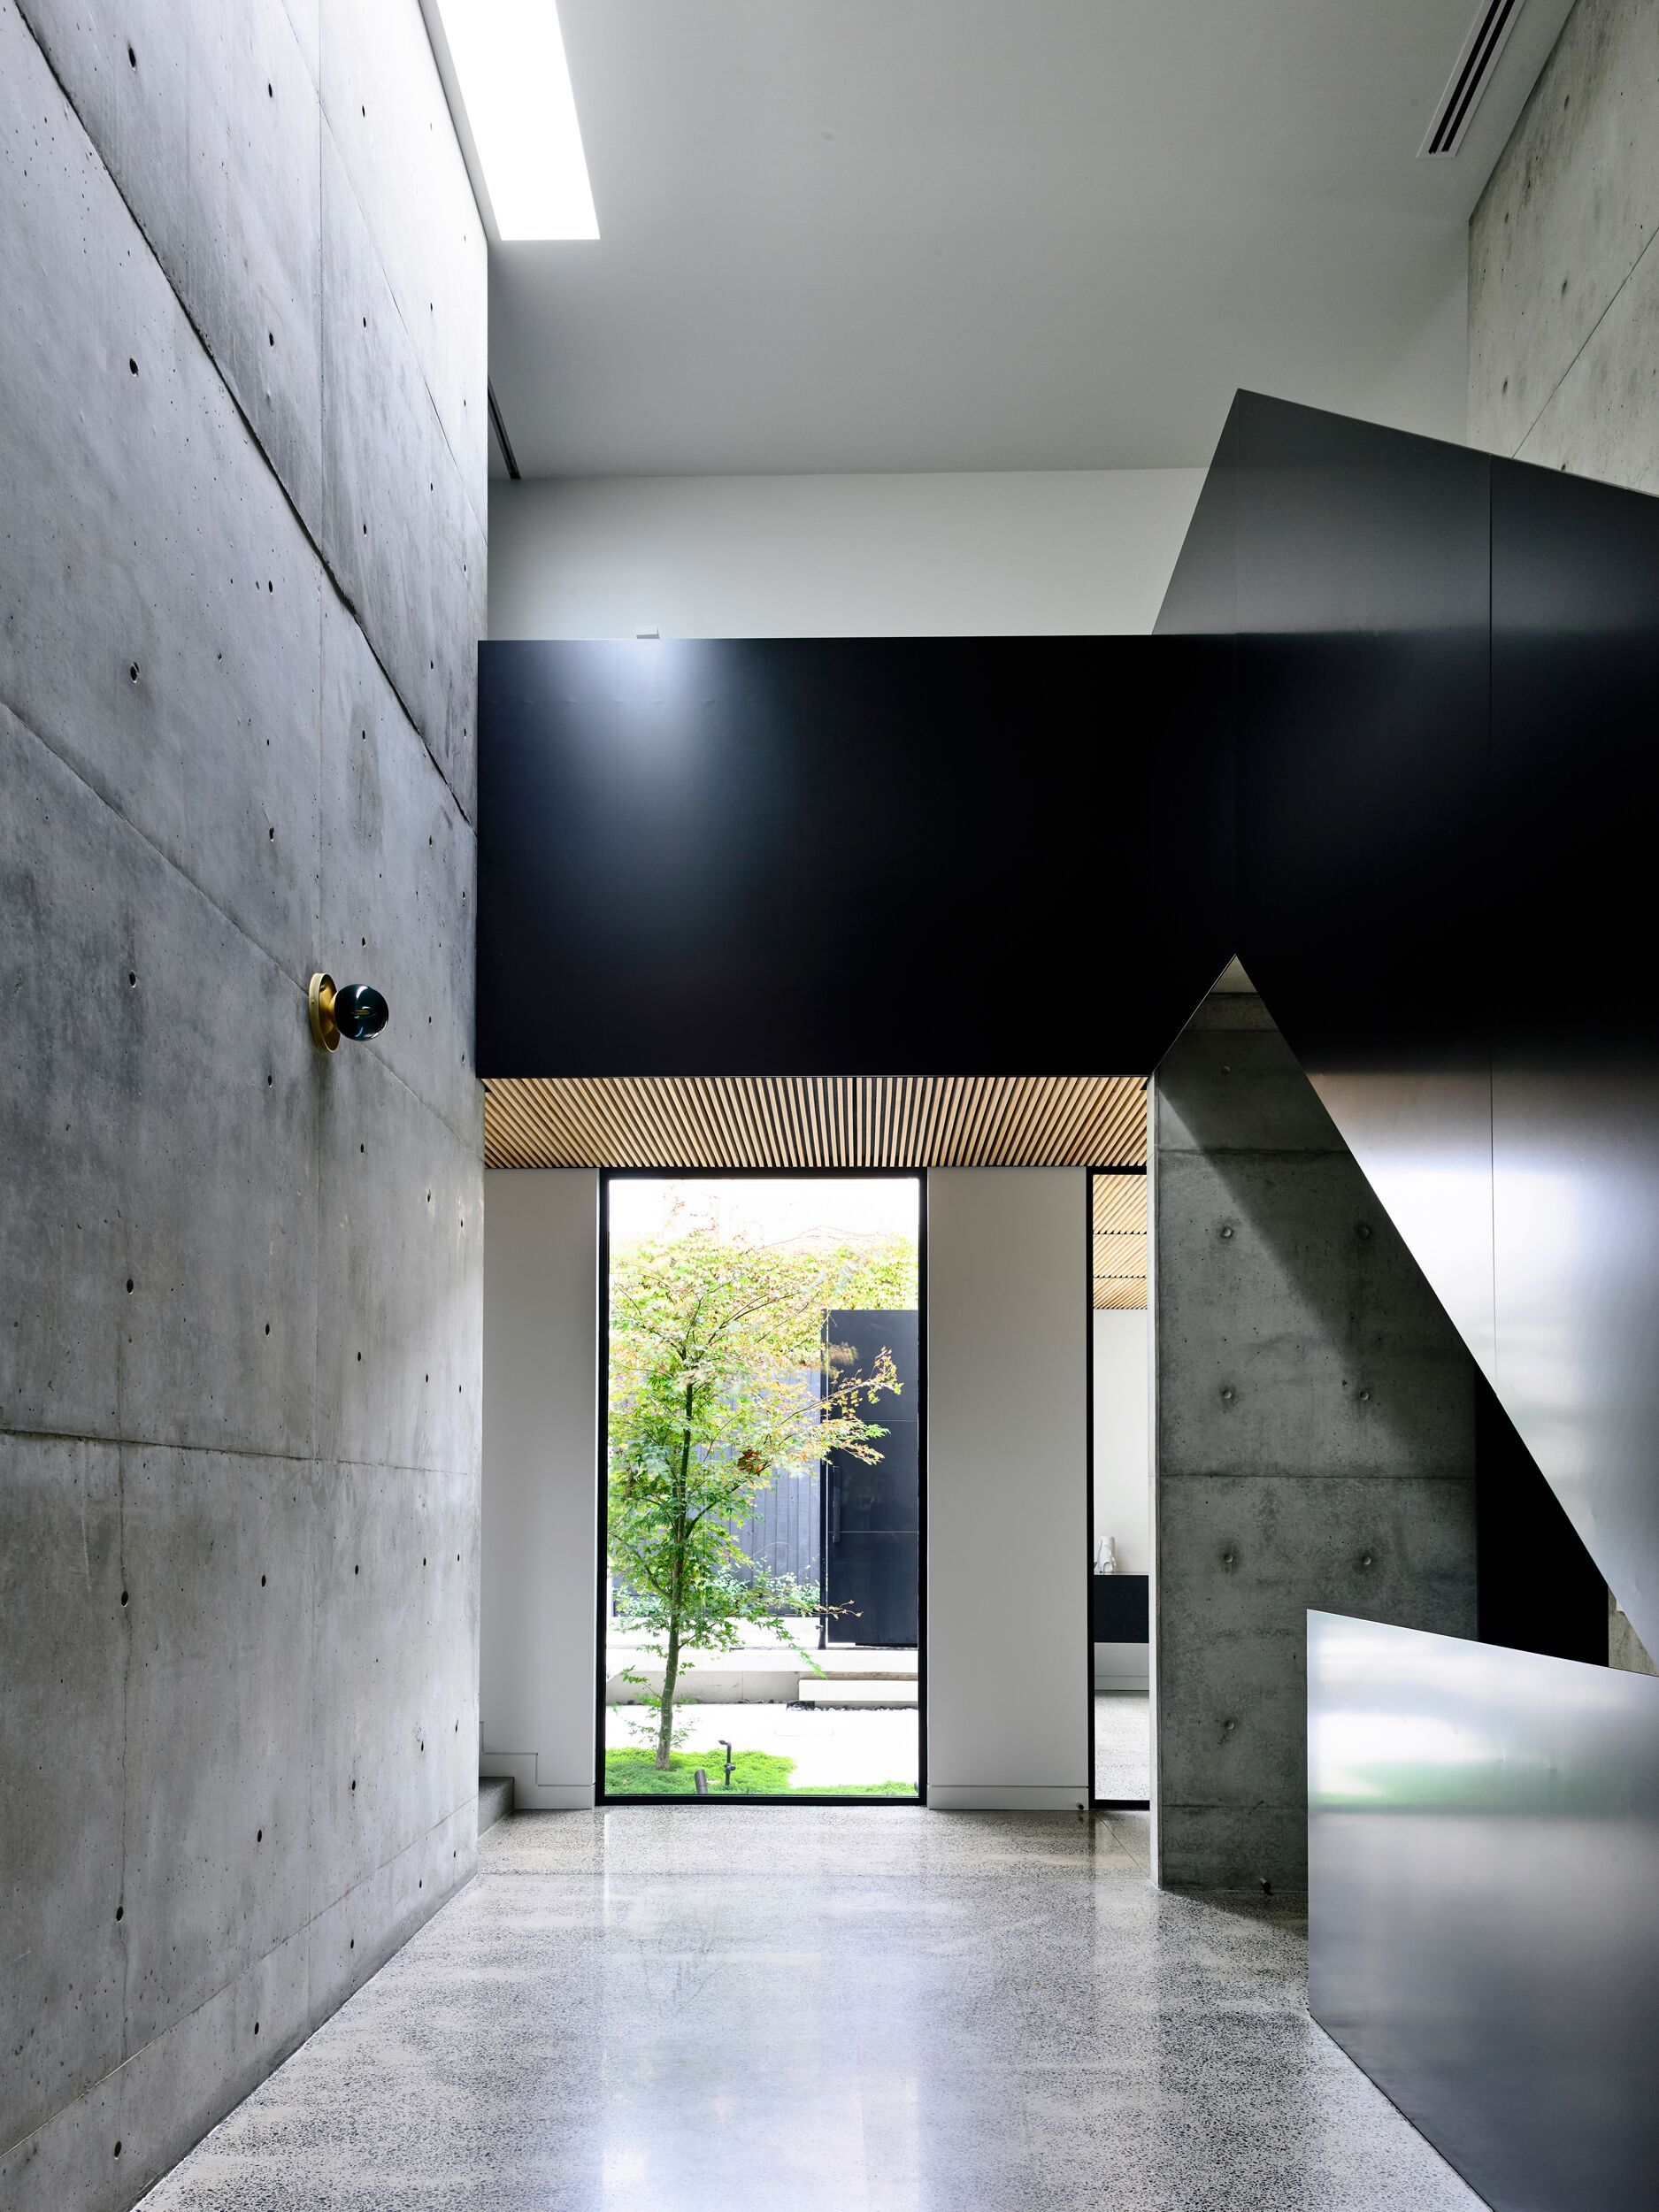 The Project Proved A Challenging Yet Rewarding Experience For The Architects Architect Interior House